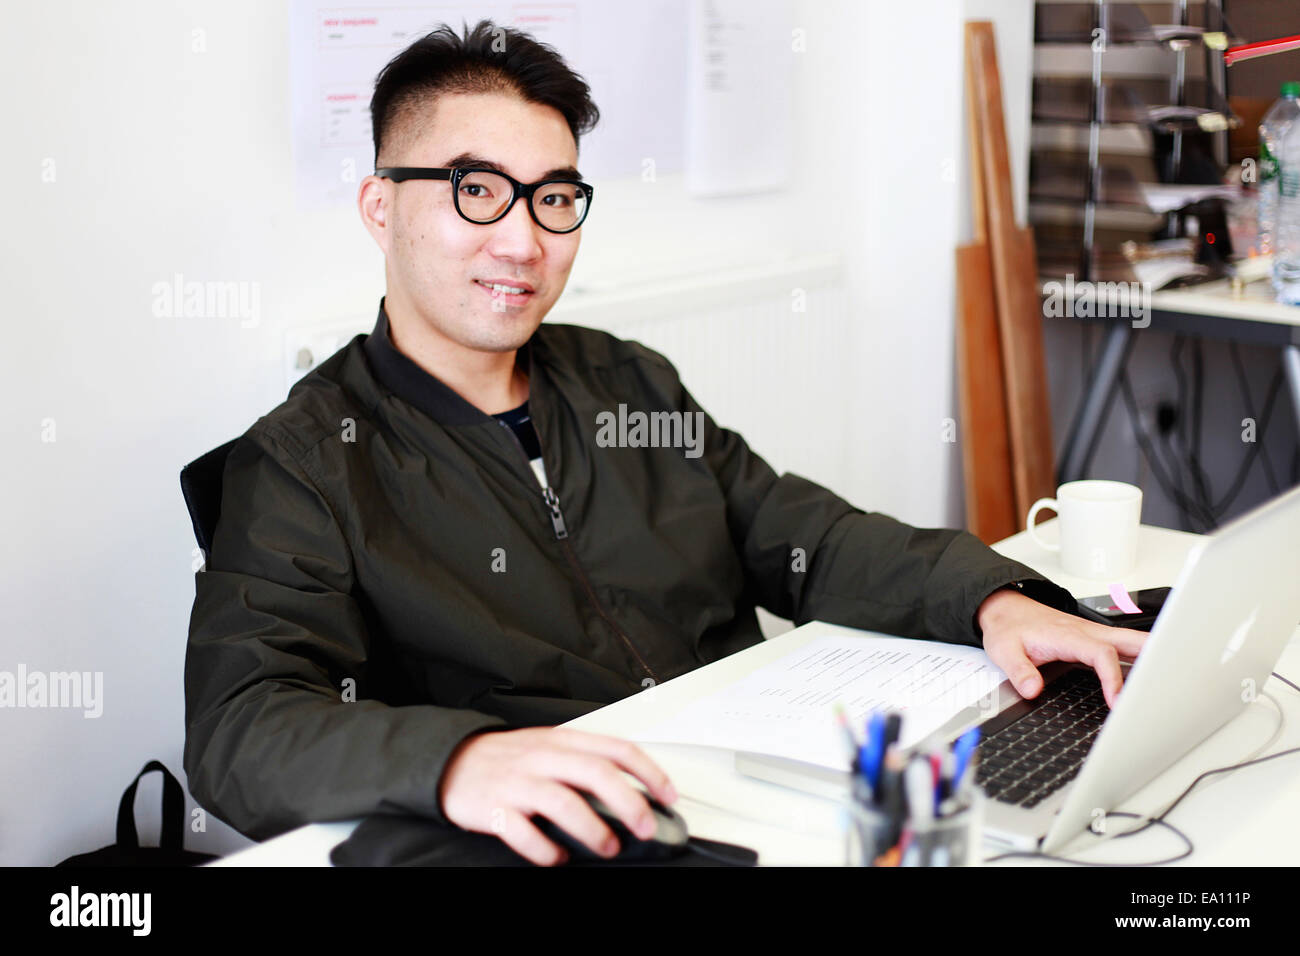 Portrait of male architect at office desk Photo Stock